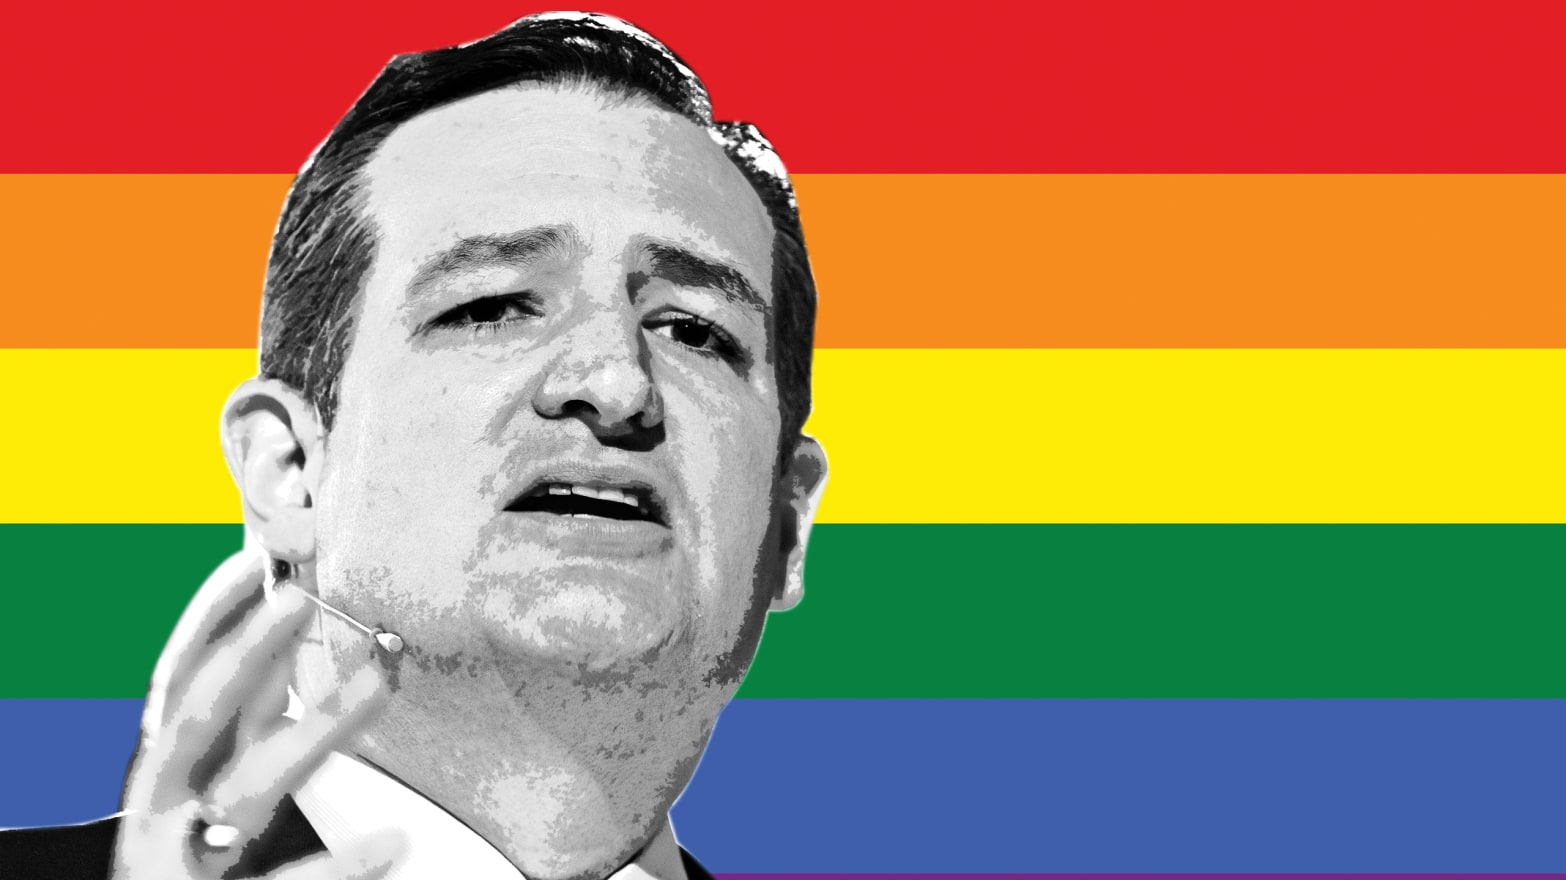 Ted Gay